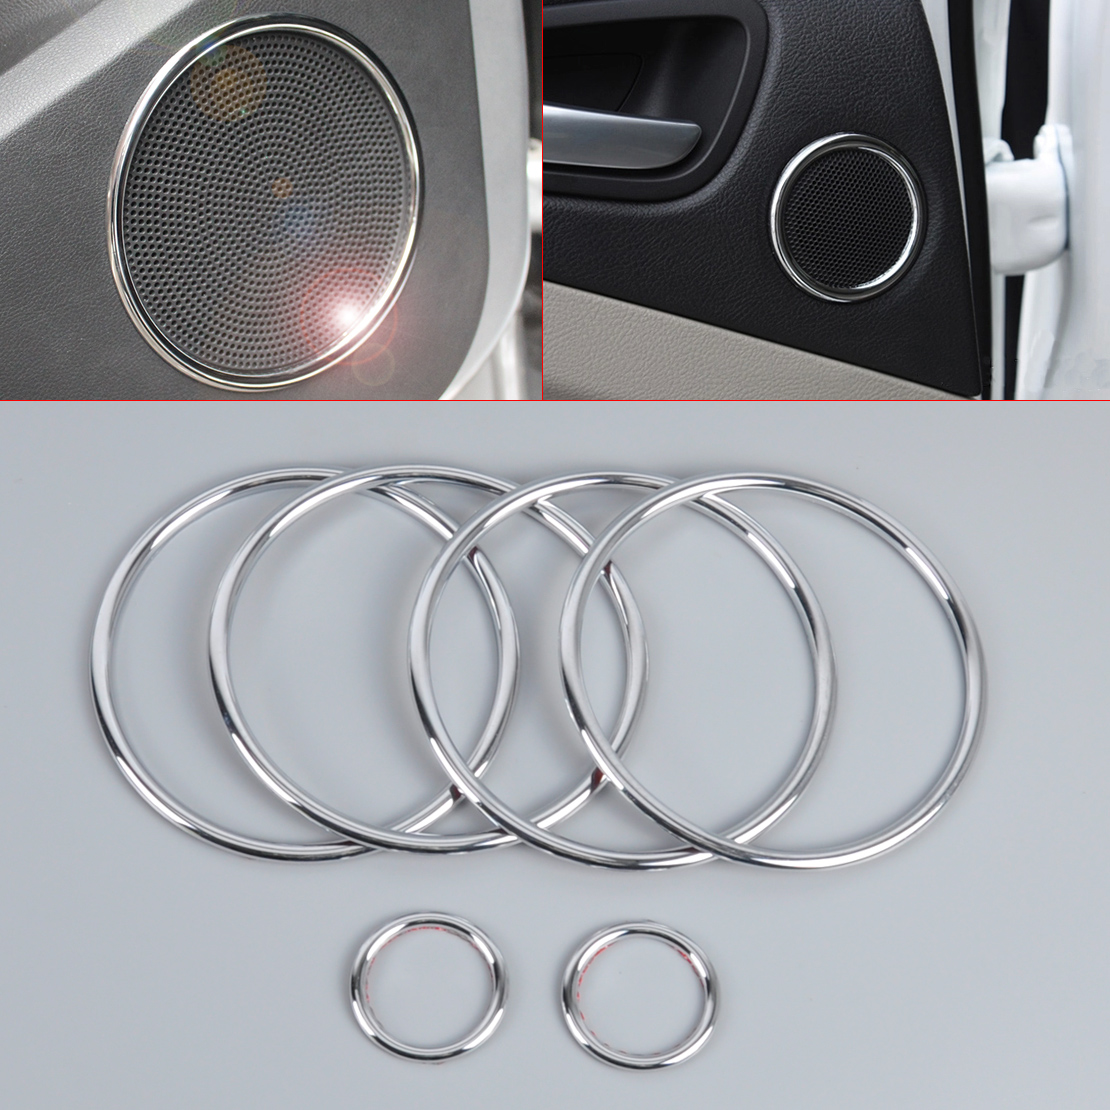 DWCX 6x Car Chrome Audio Speaker Stereo Decorative Ring Cover Loop Decorative Ring Sticker Cover For Ford Kuga Escape 2013 2014